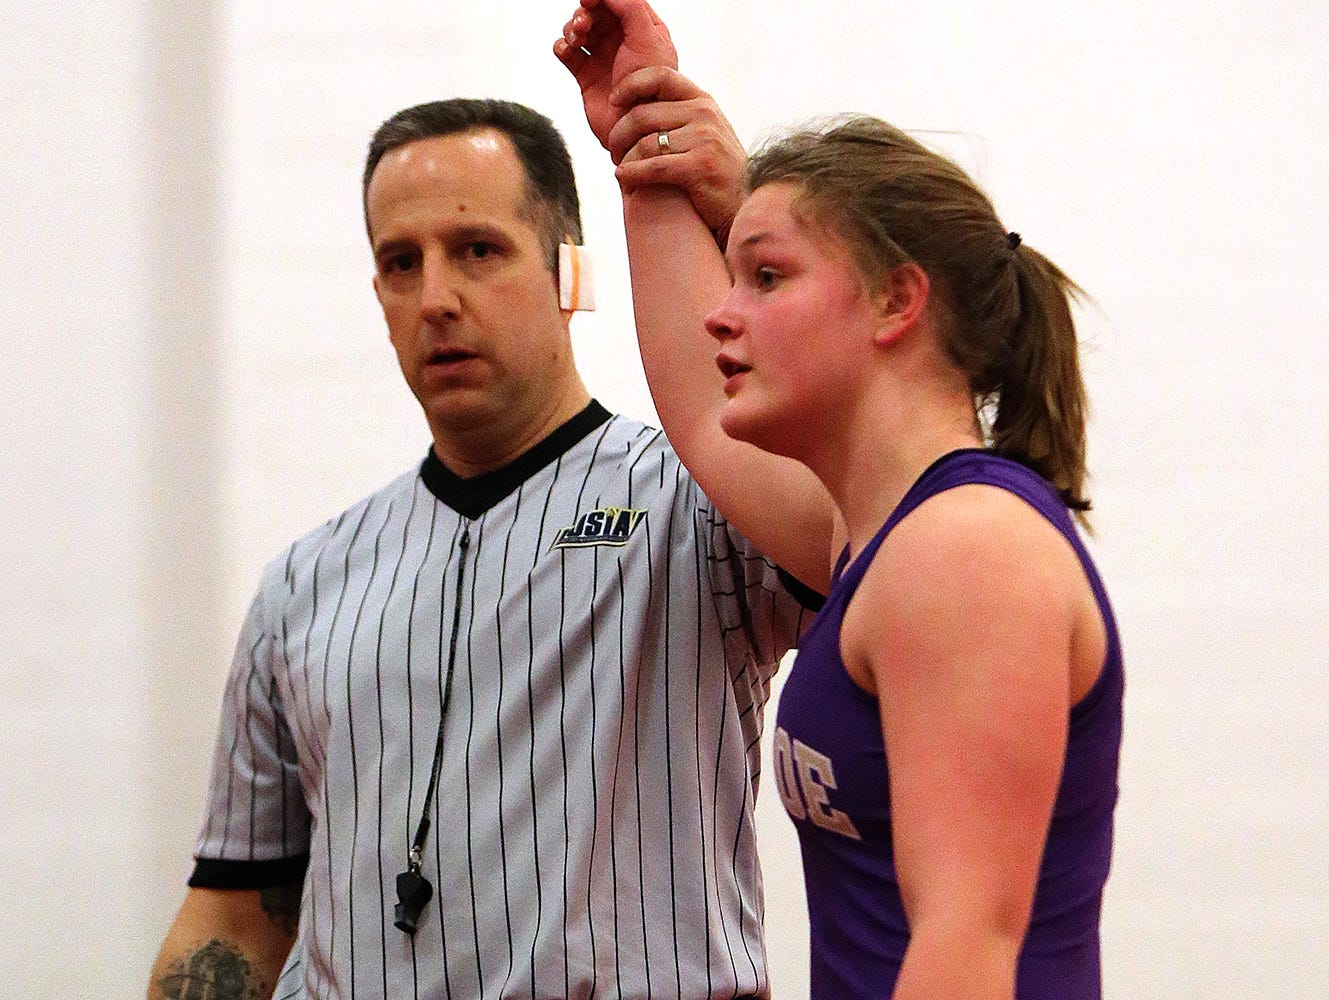 Middlesex County girls wrestling tournament